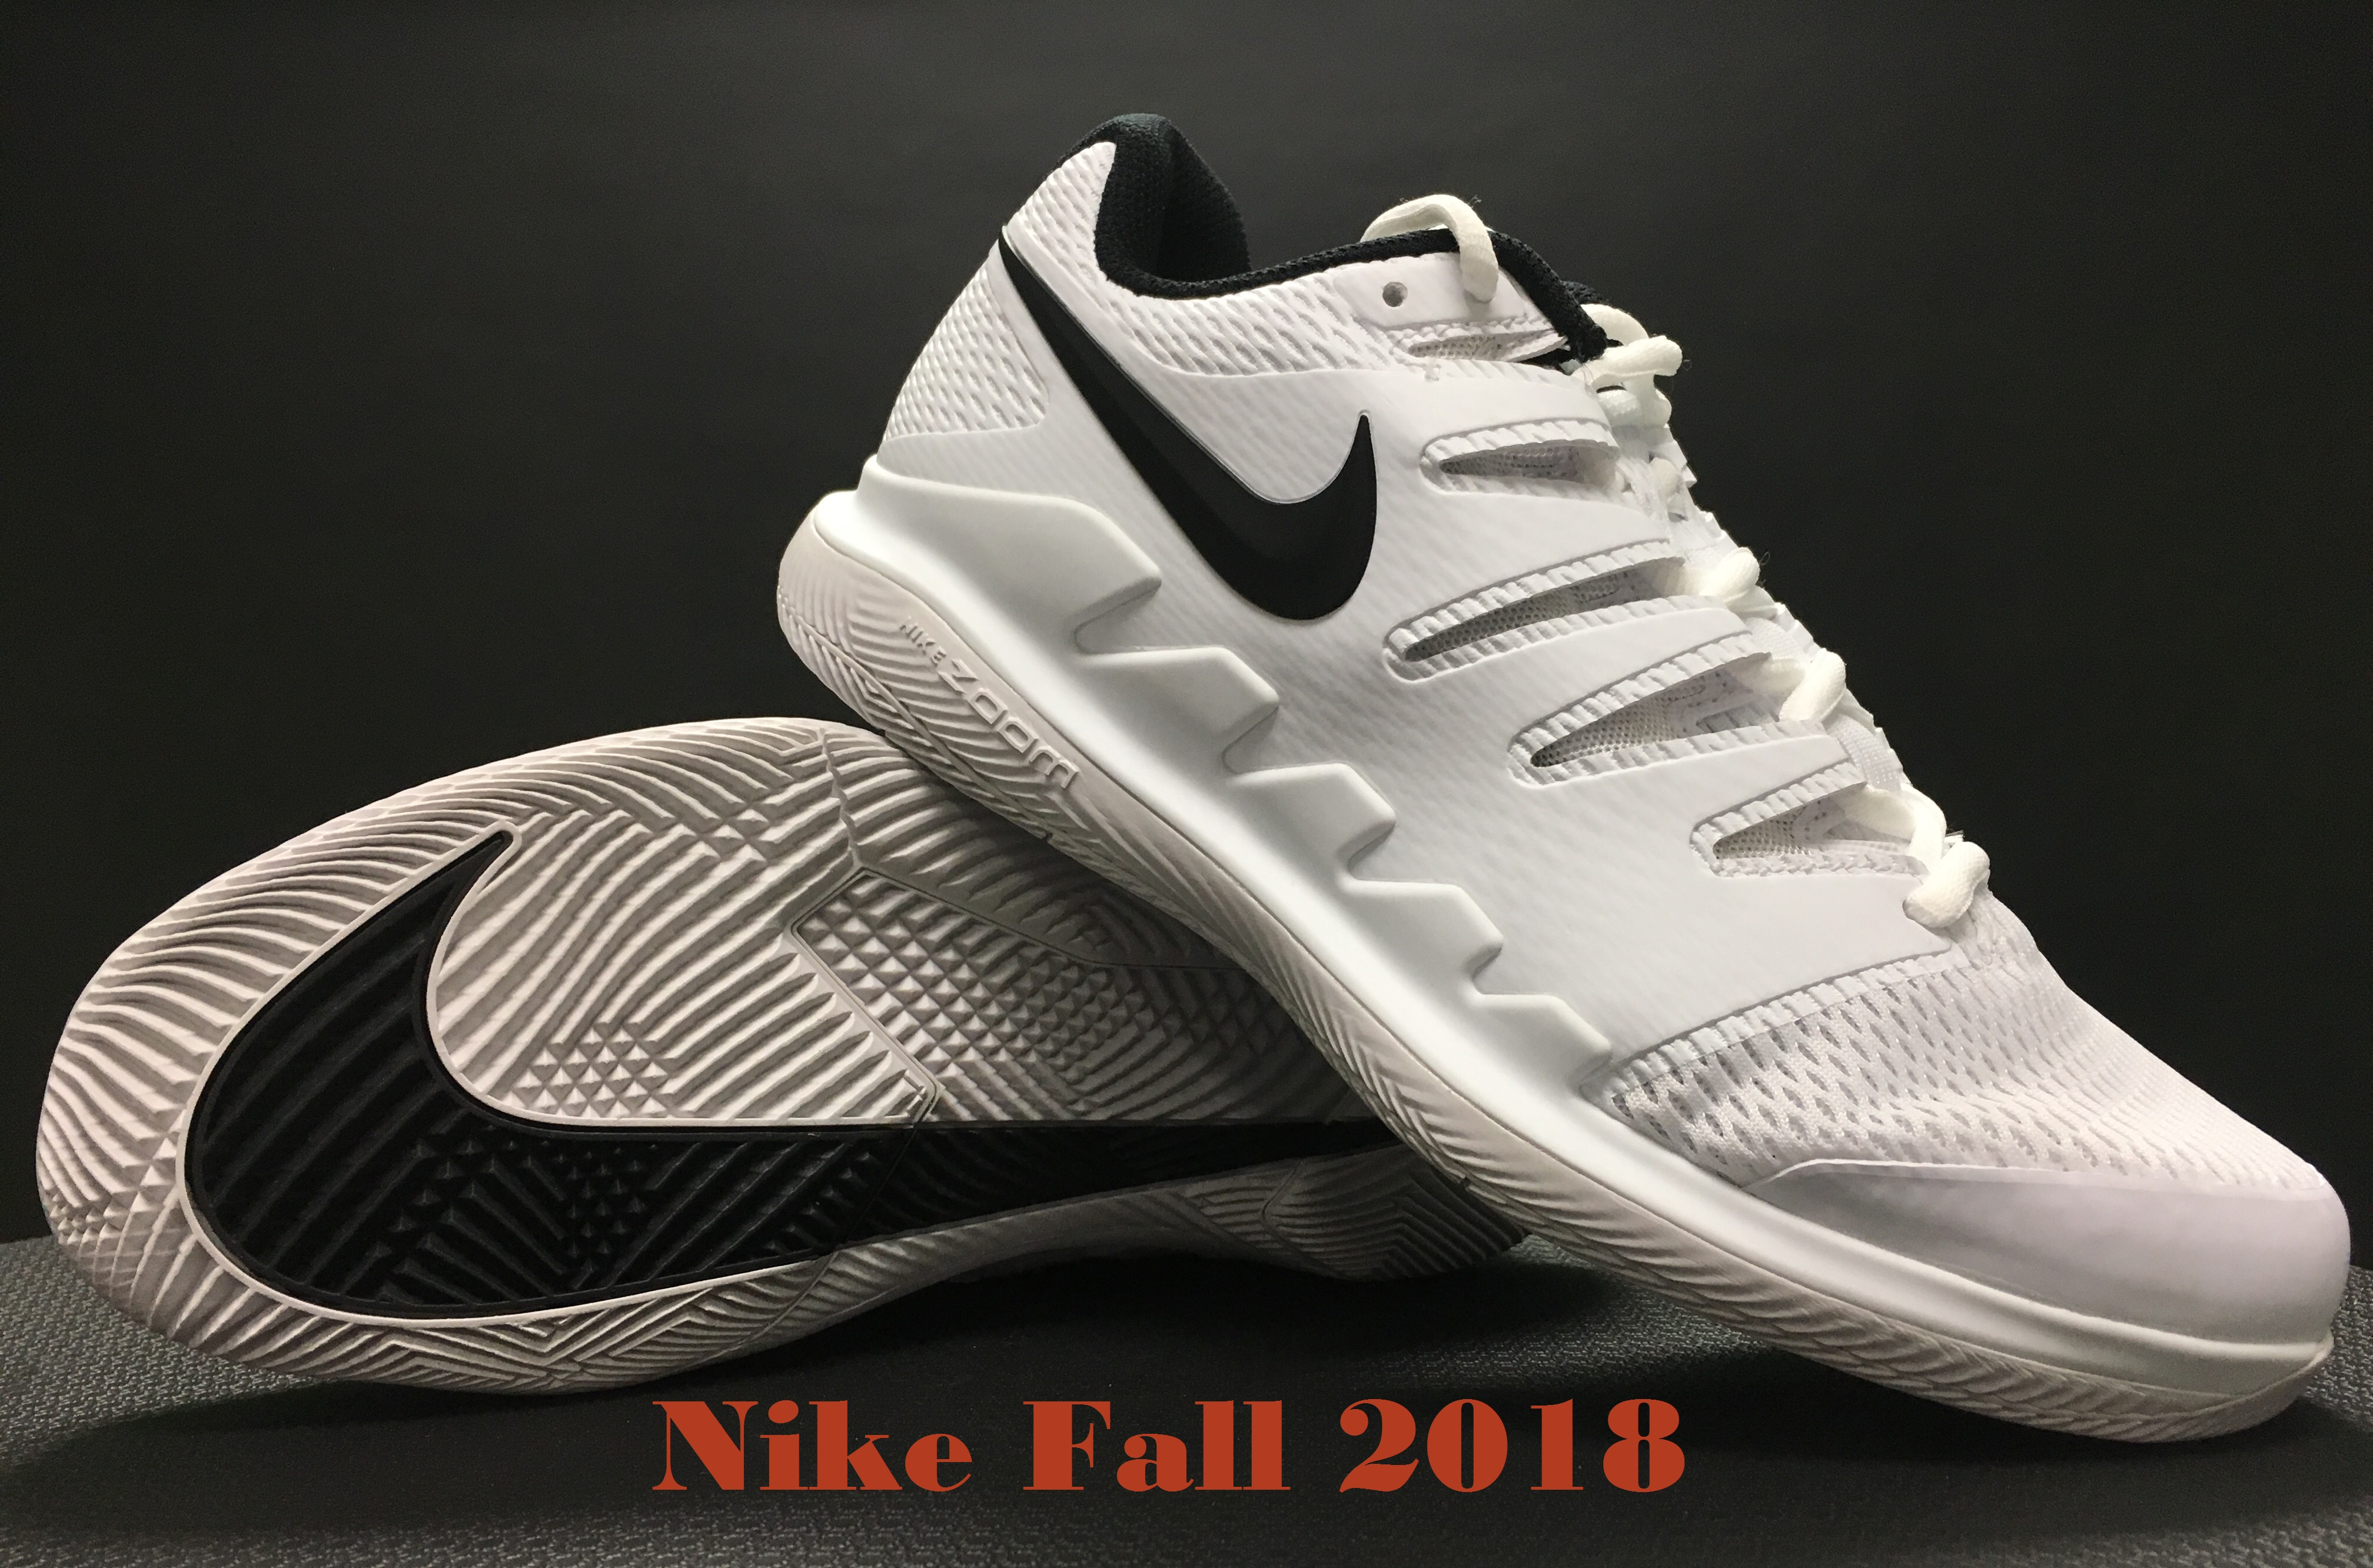 Nike Fall 2018 Tennis Shoes May Feature More Colors Than Autumn Thumbnail